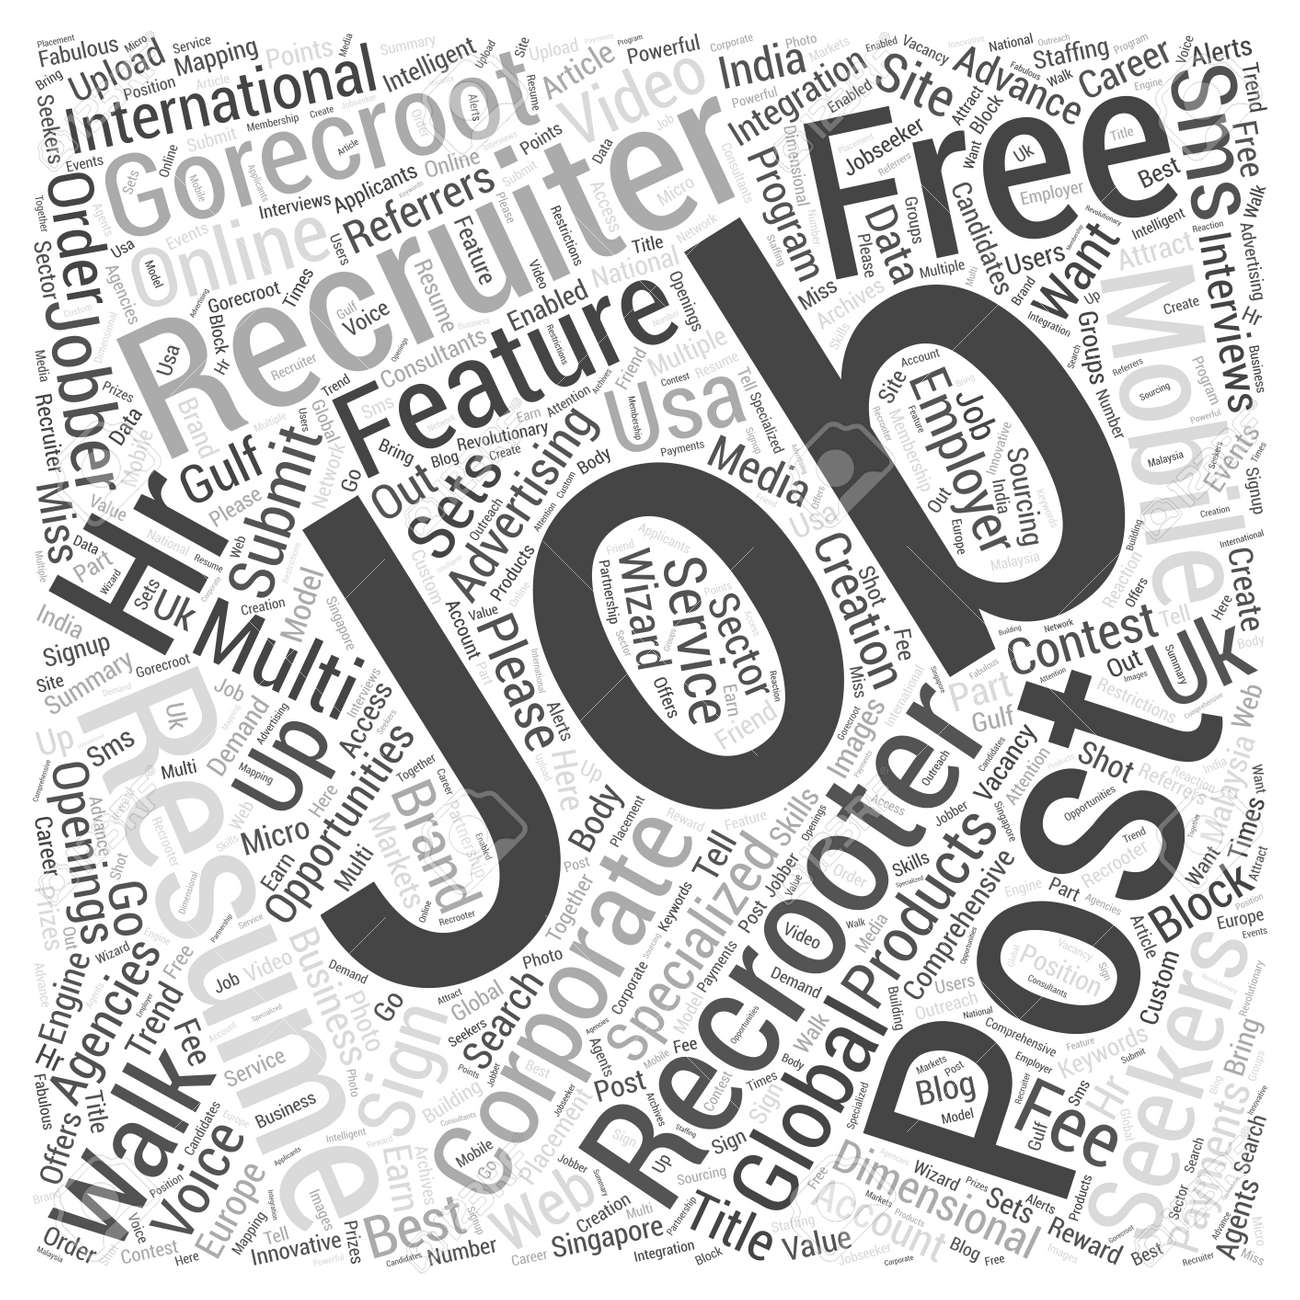 GoRecroot International Jobs Recruiters Post Free Job Openings.. Stock Photo, Picture And Royalty Free Image. Image 72892725.